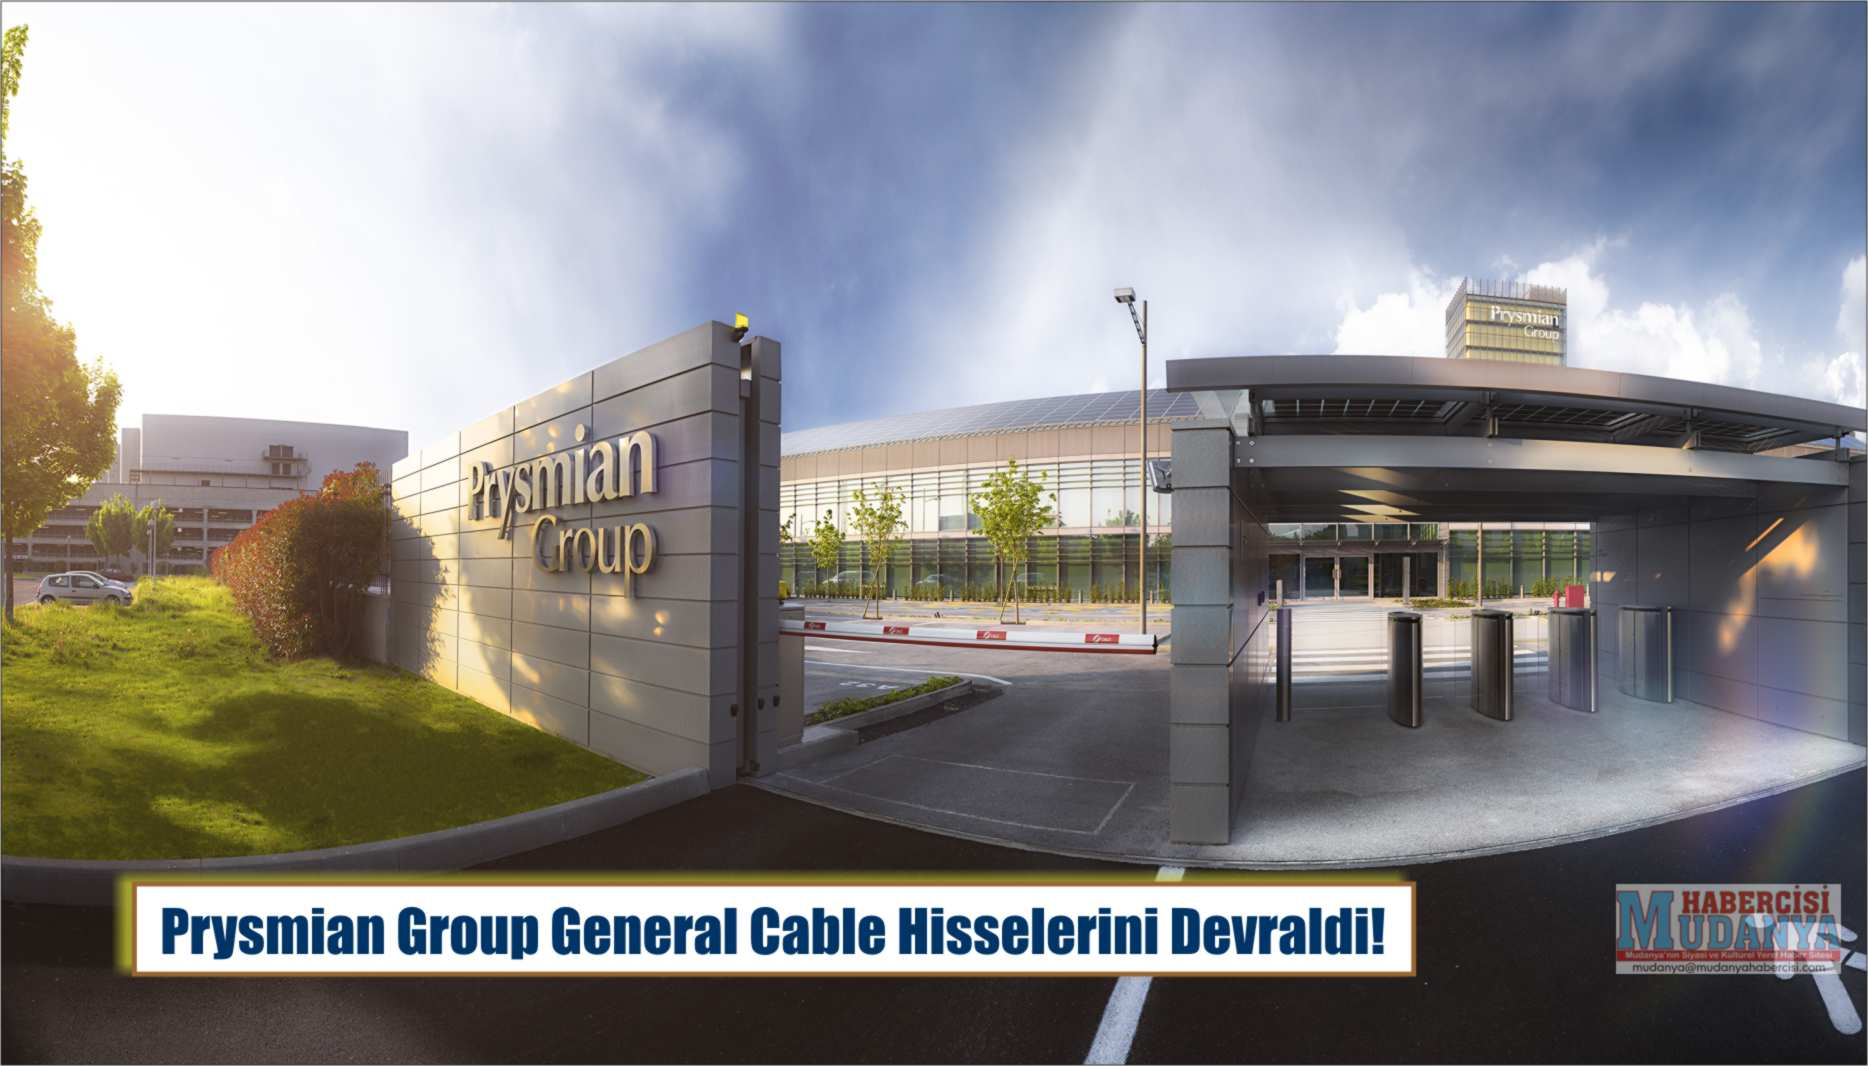 PRYSMİAN GROUP GENERAL CABLE HİSSELERİNİ DEVRALDİ!